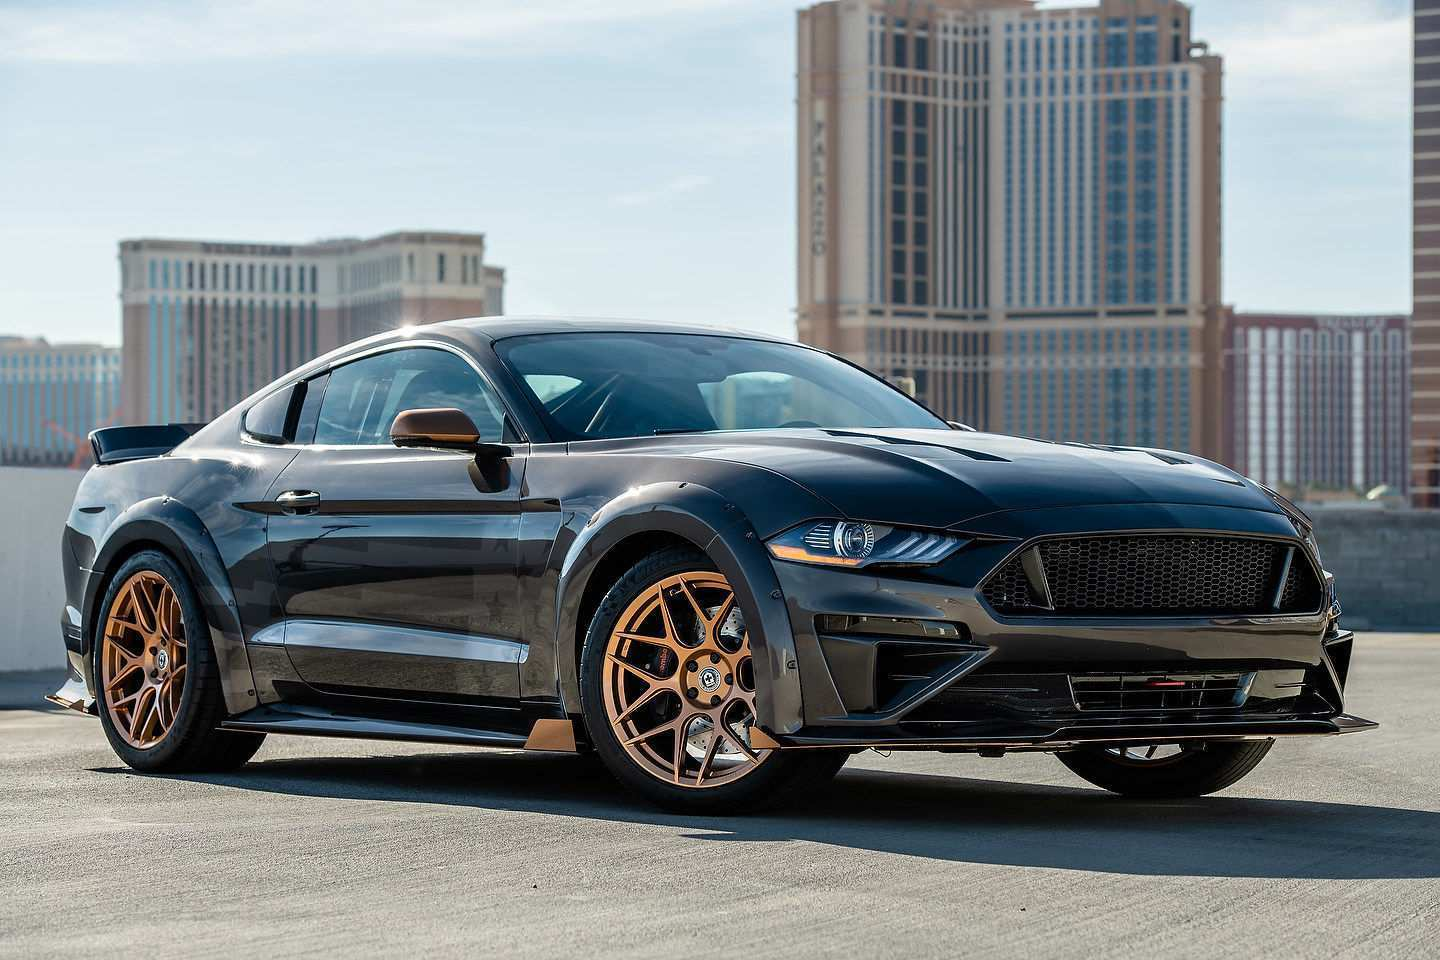 58 The Best 2020 Ford Mustangand Model